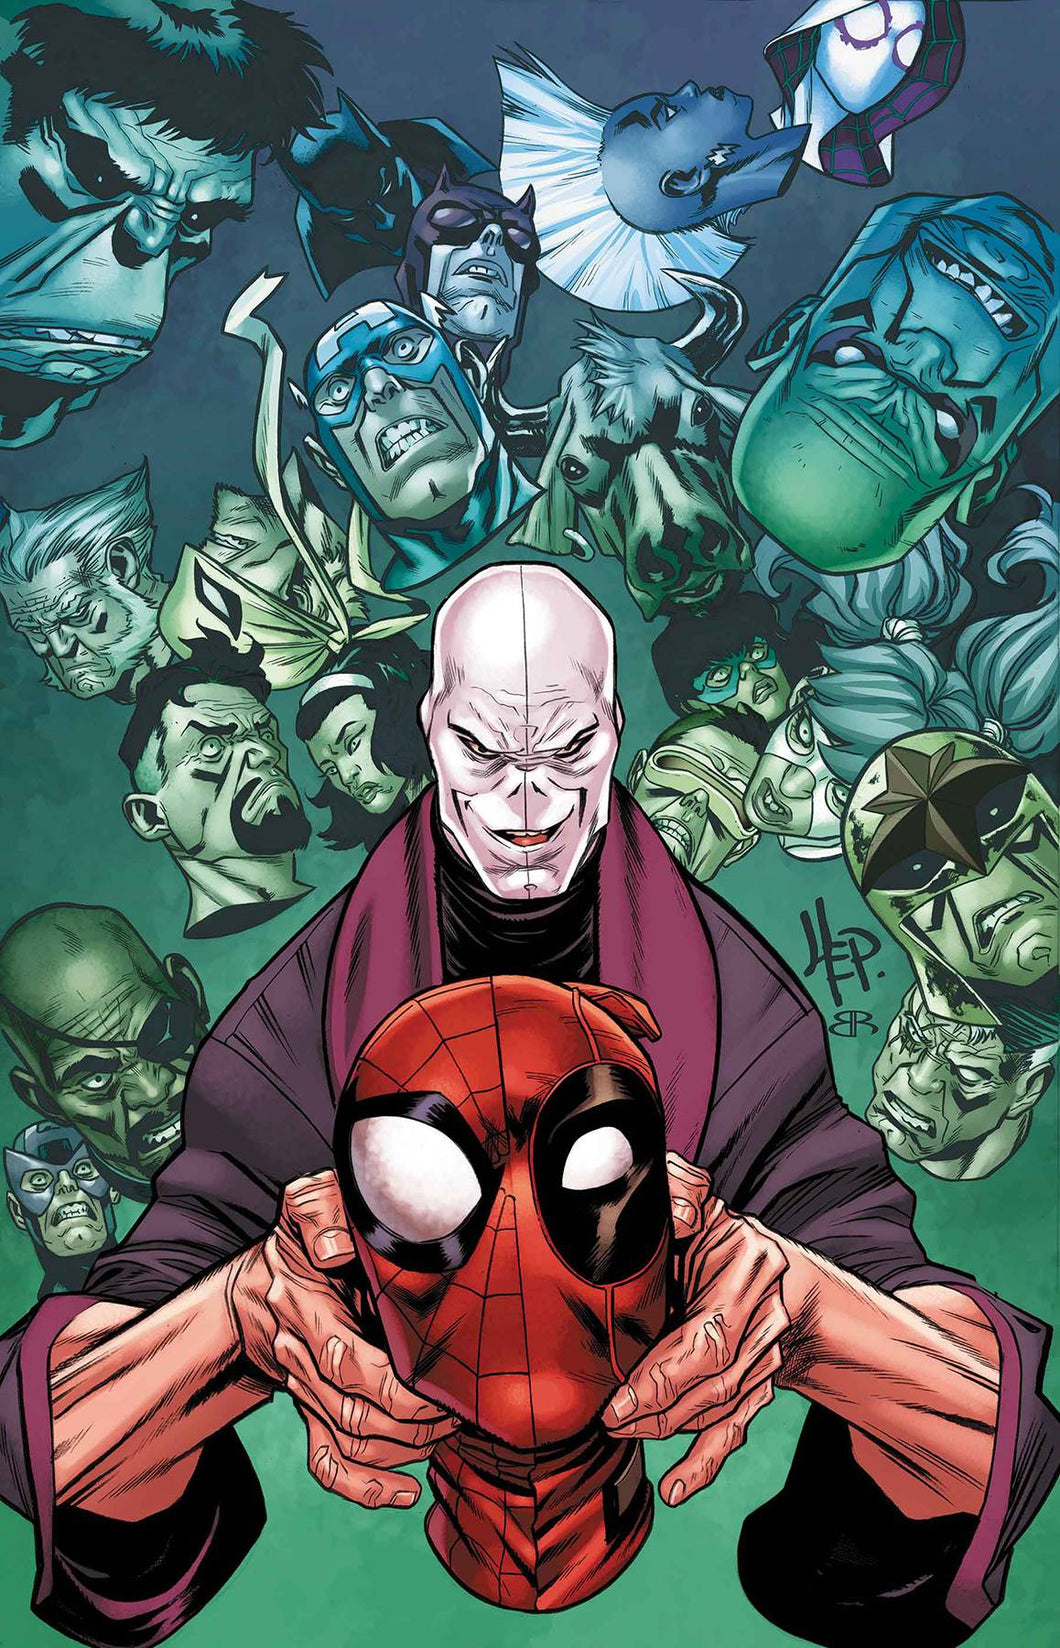 SPIDER-MAN DEADPOOL #27 LEG 02/07/18 RD